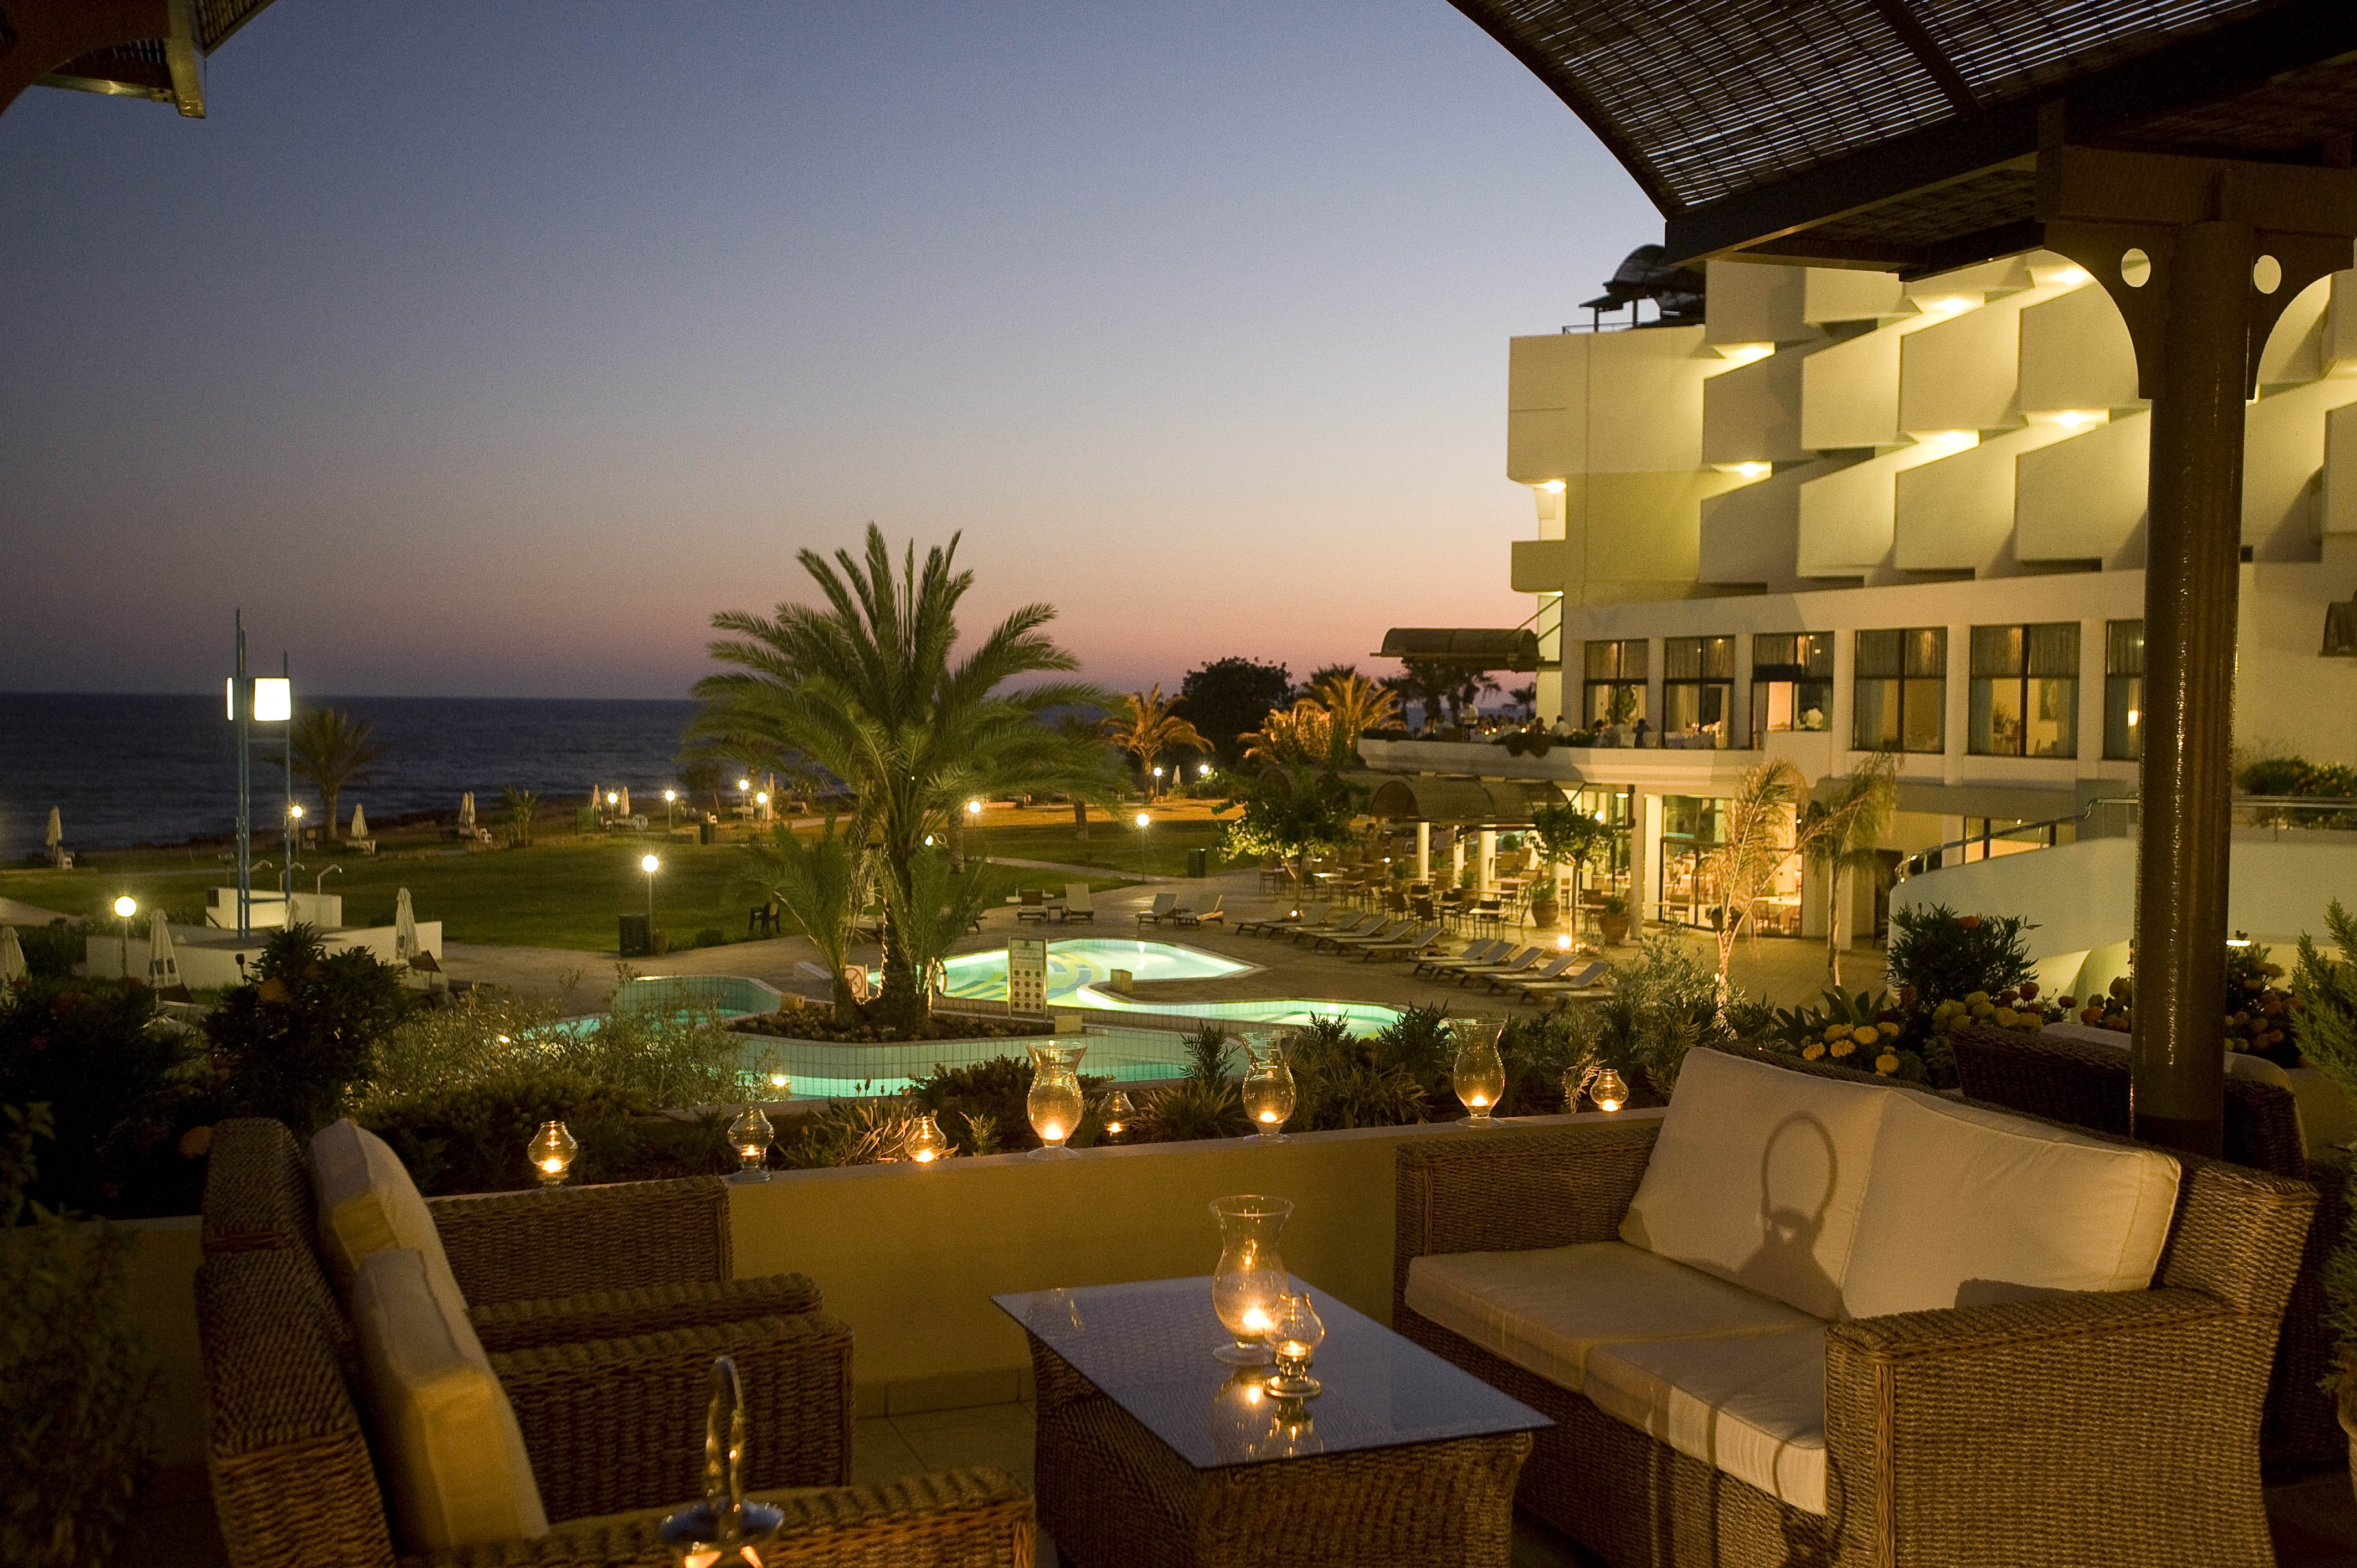 ATHENA ROYAL BEACH HOTEL 4* DELUXE PAPHOS - CYPRUS